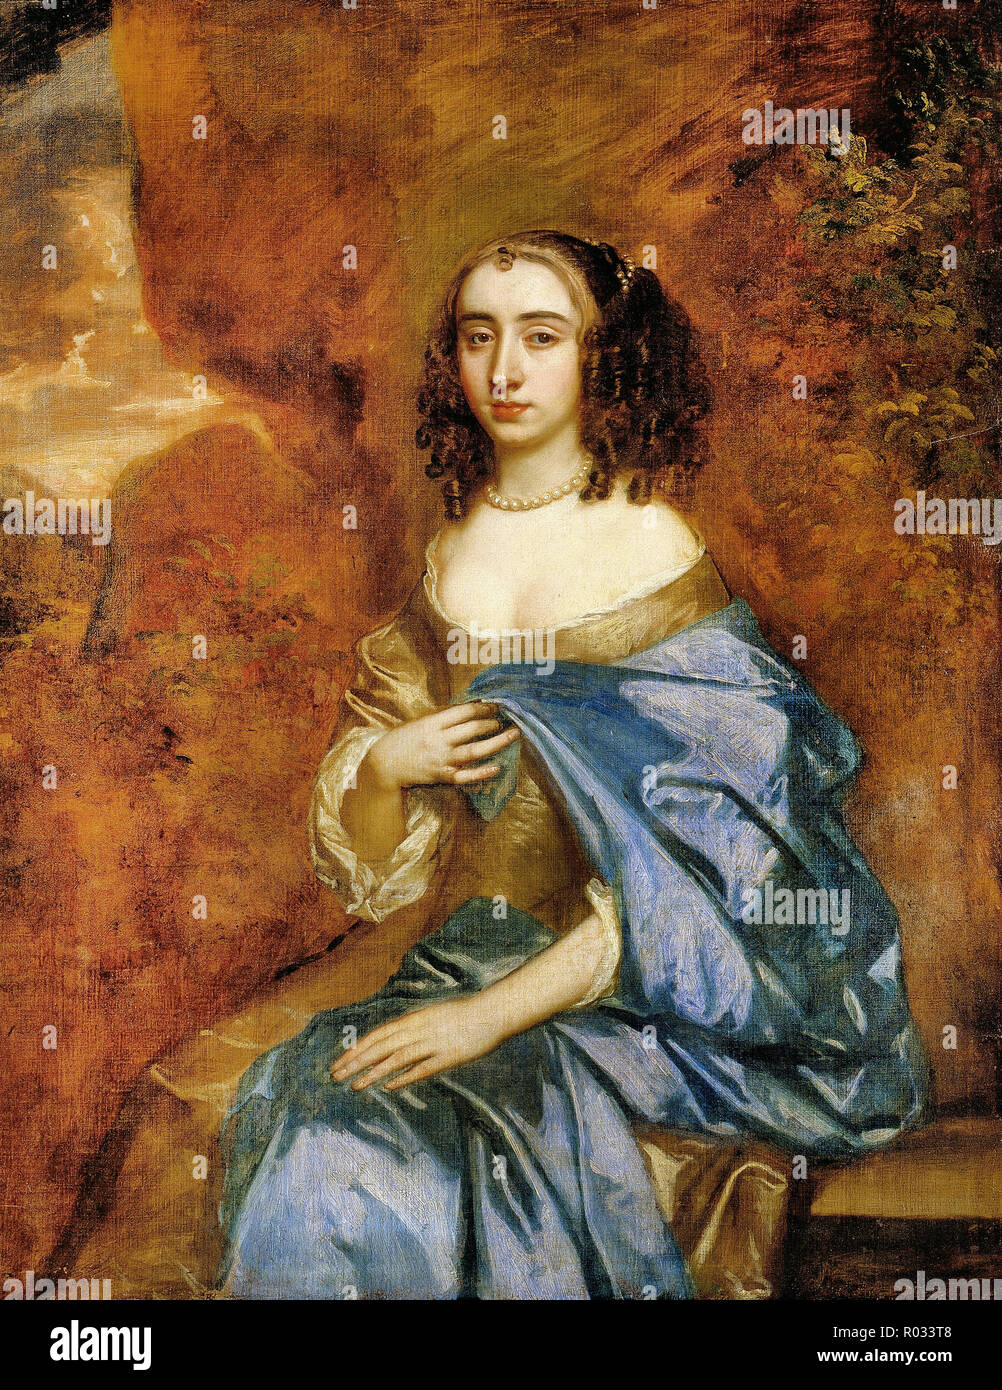 Peter Lely, Portrait of a Lady with a Blue Drape, Circa 1660 Oil on canvas, Dulwich Picture Gallery, London, England. - Stock Image